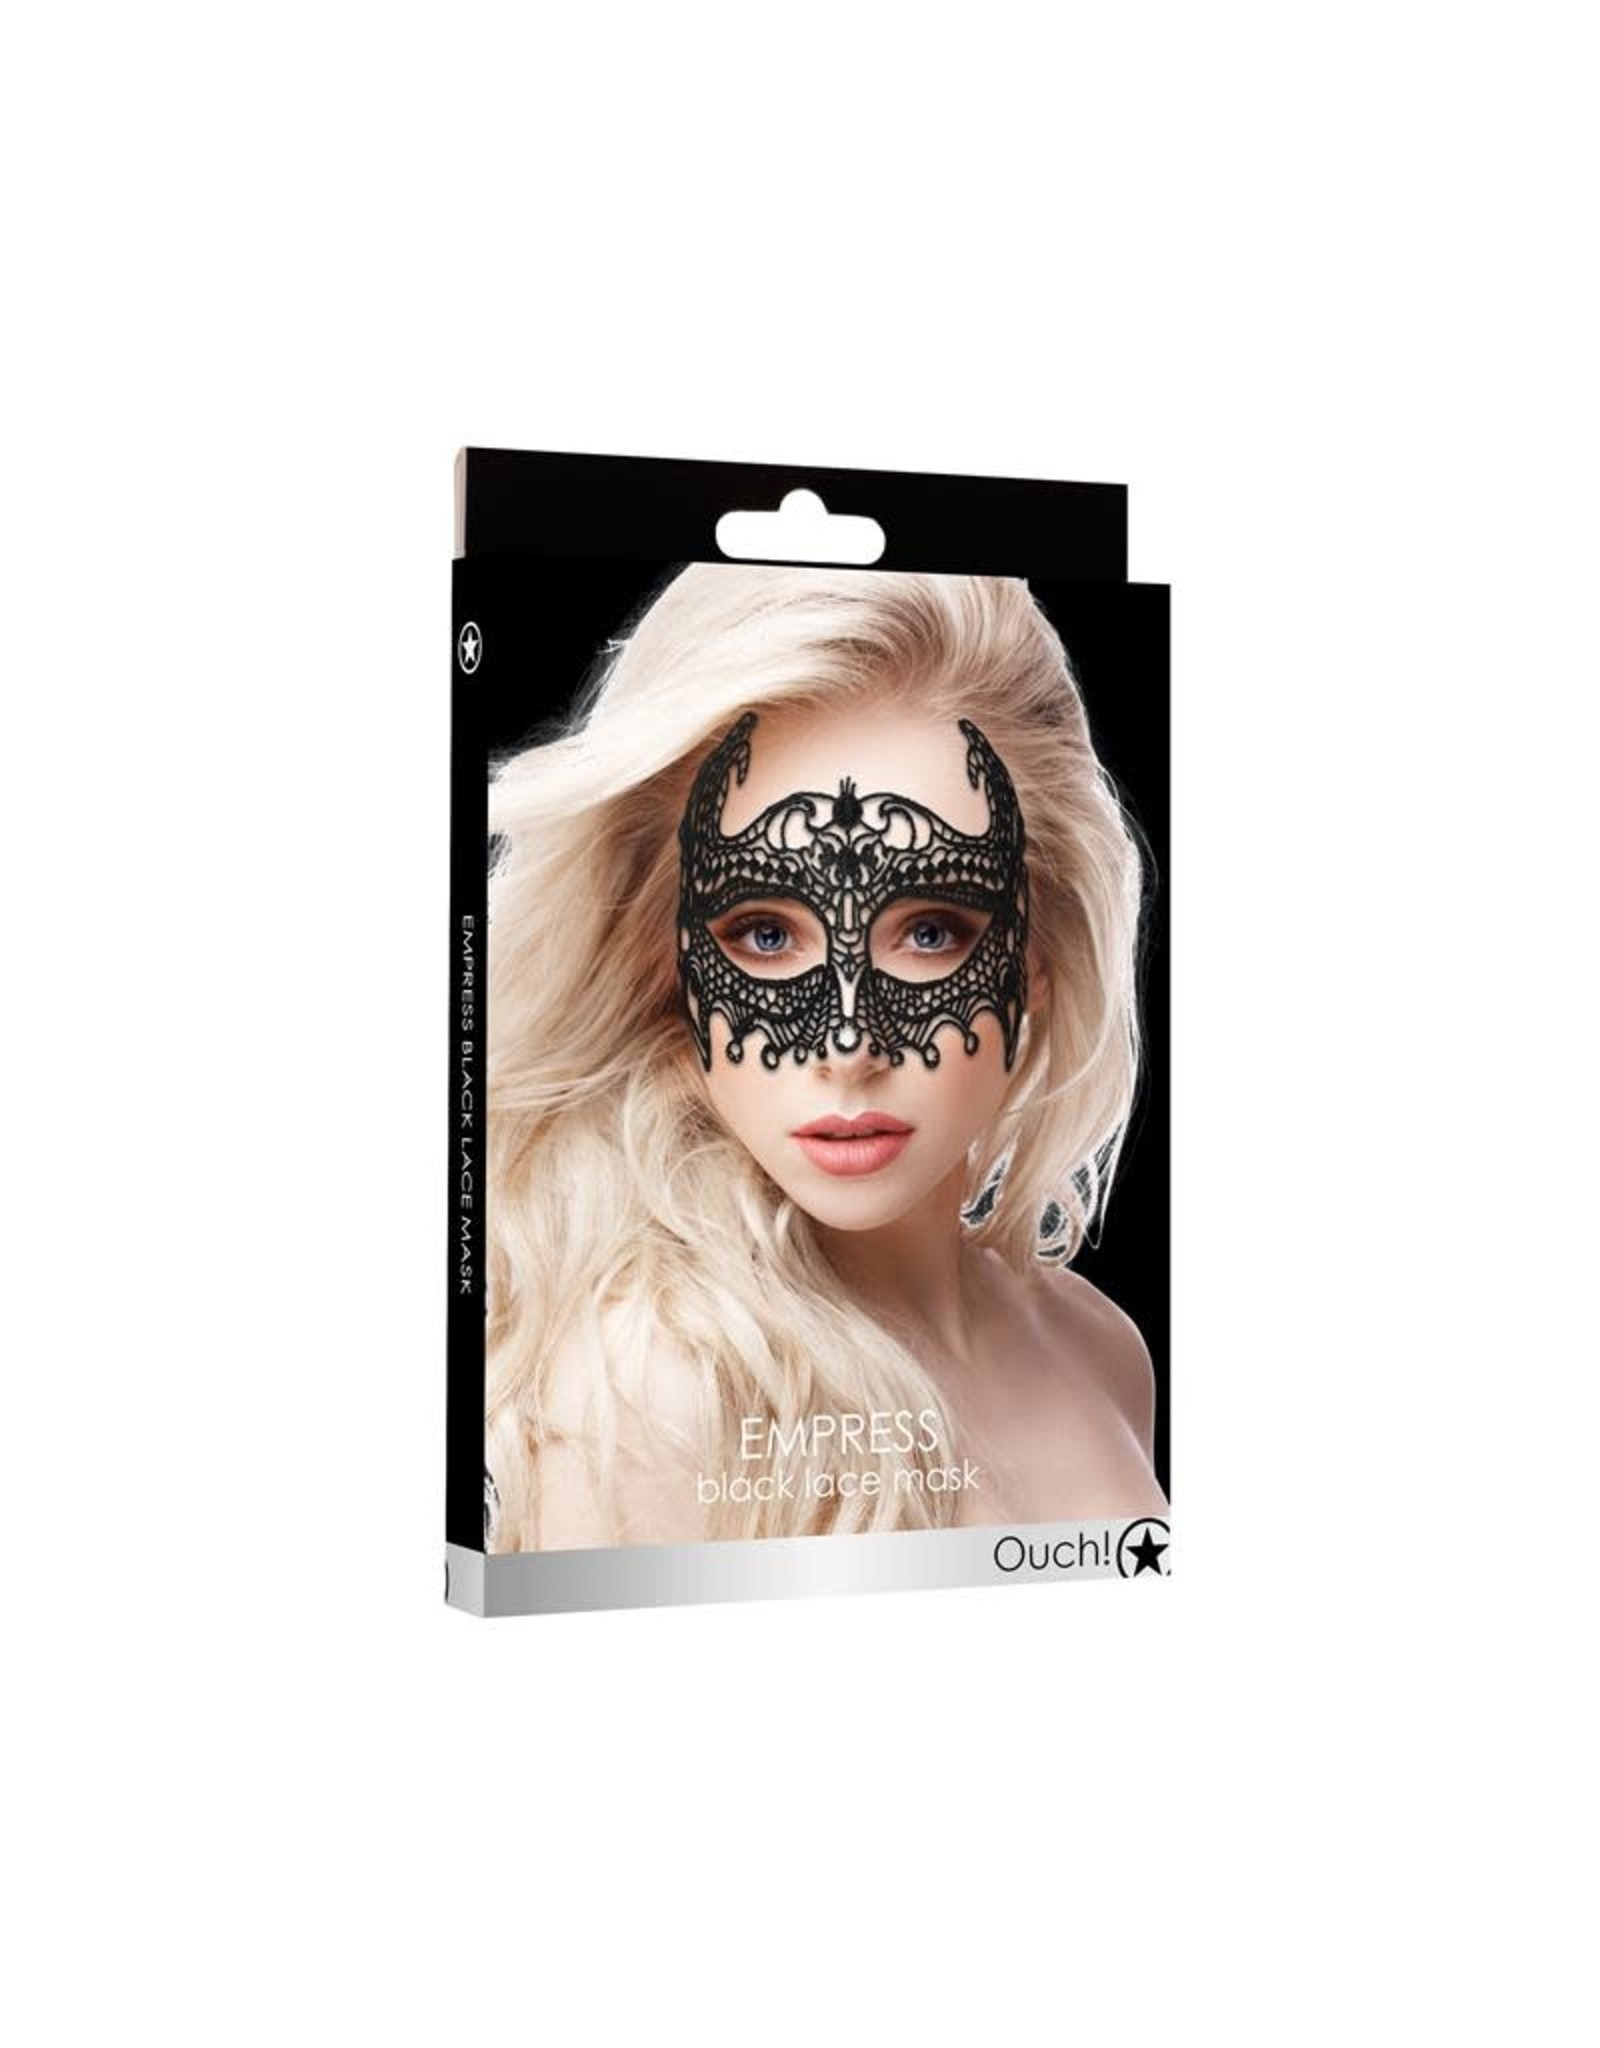 OUCH! - EMPRESS LACE MASK